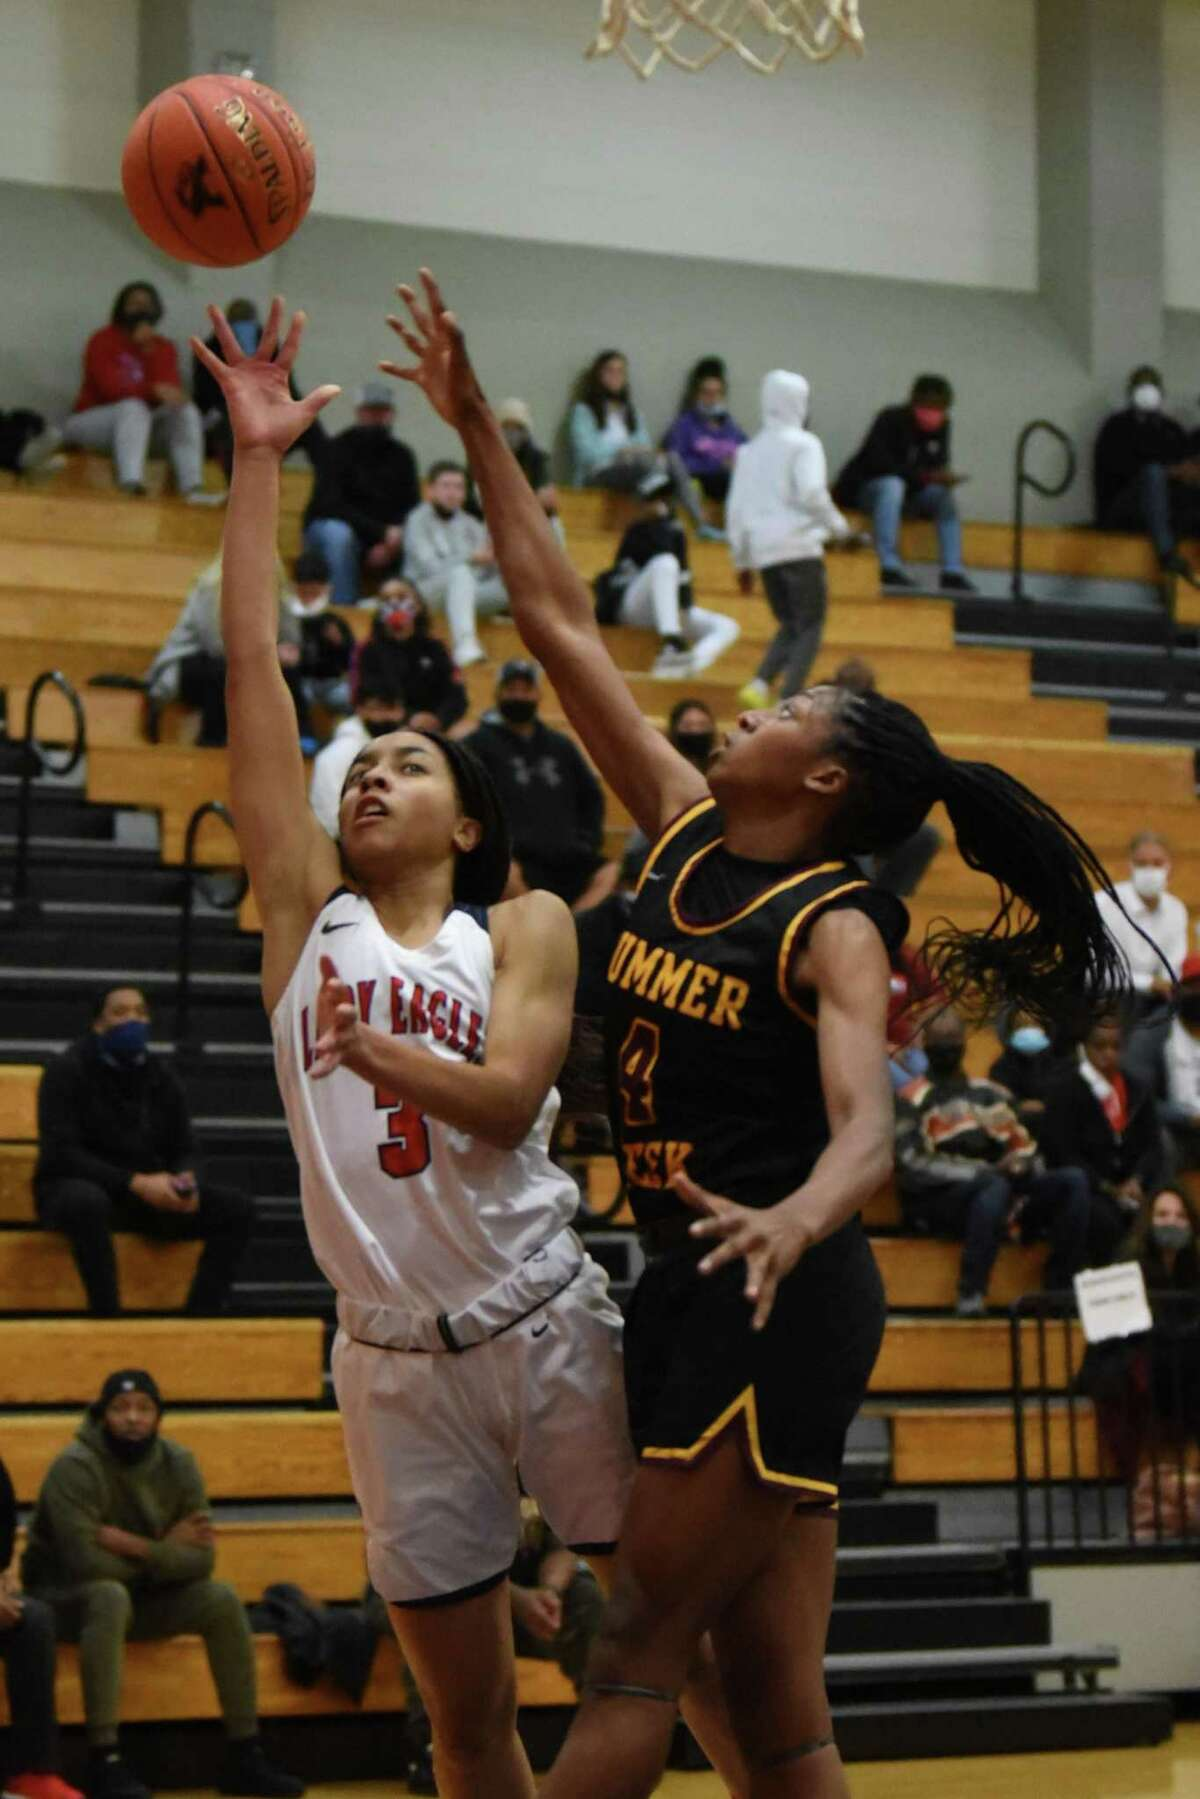 Summer Creek's Kaitlyn Duhon scored a game-high 14 points in the Lady Bulldogs' upset win over No. 20 Atascocita Tuesday night at the Eagles gym.